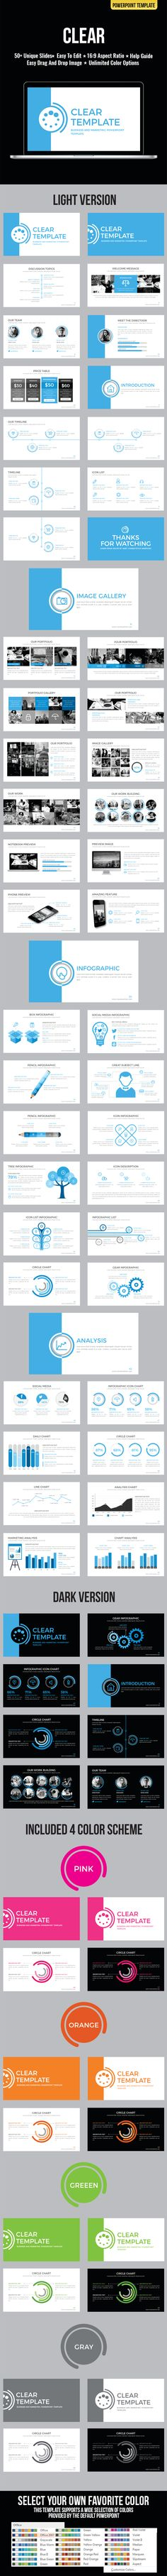 Business Plan DNA PowerPoint Presentation Template | GraphicRiver ...